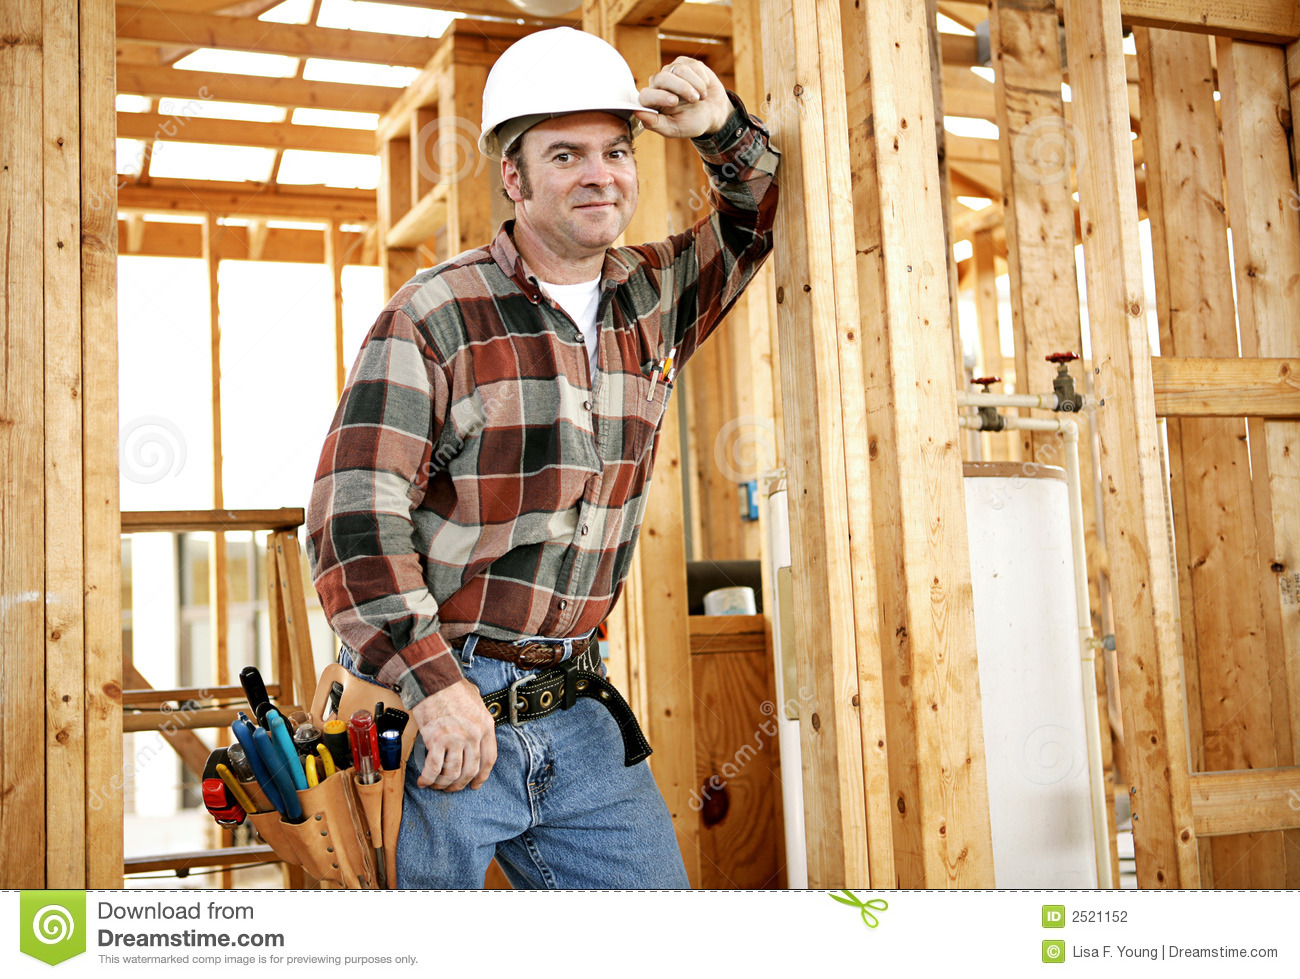 Construction worker dating website